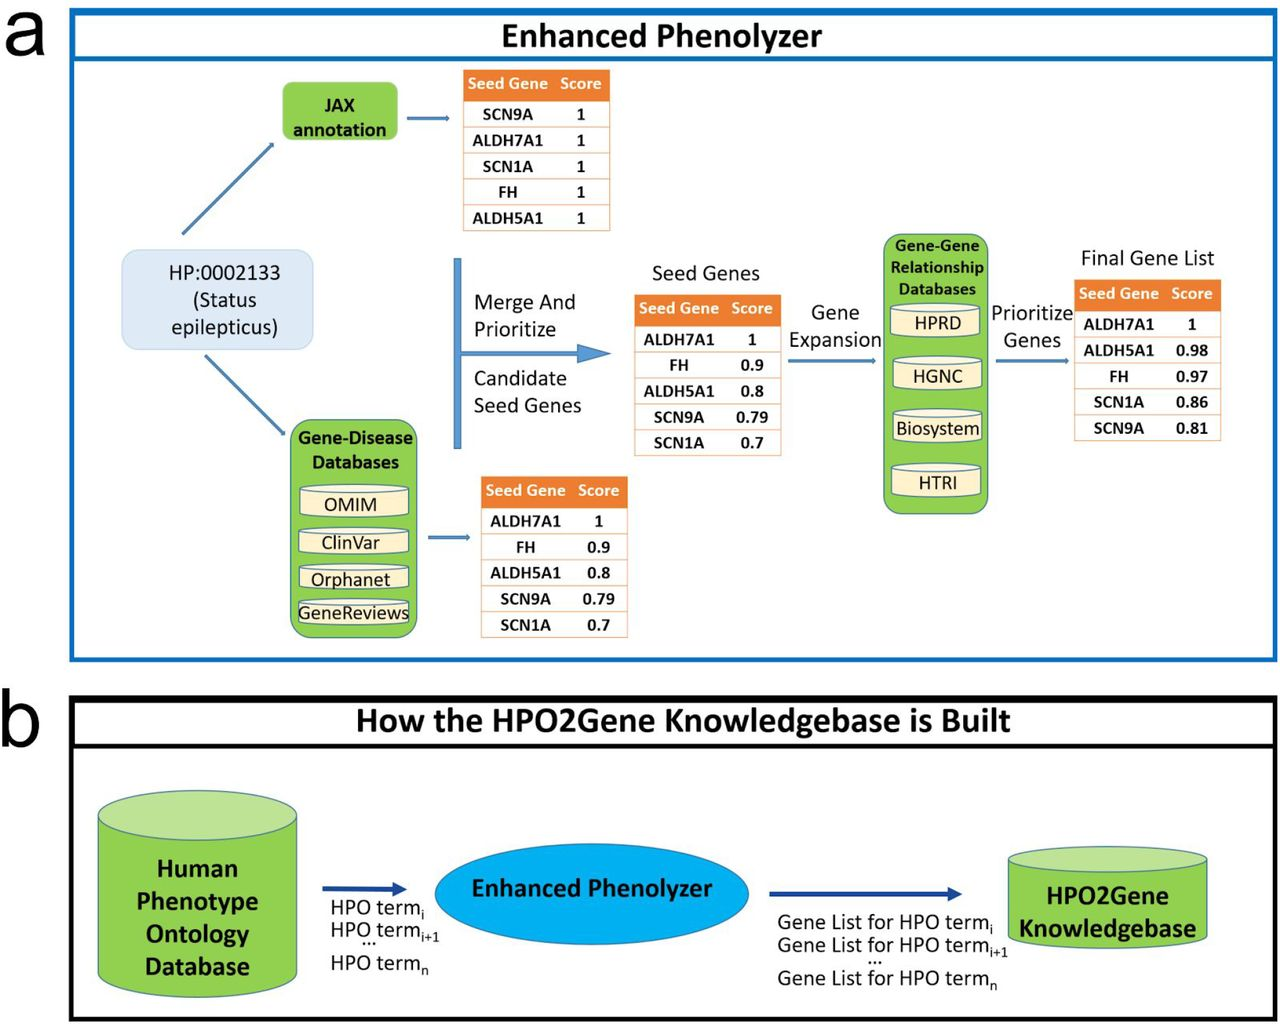 The construction of the HPO2Gene Knowledgebase. HPO terms are extracted one by one from the HPO database and passed into an enhanced version of Phenolyzer (dubbed Enhanced Phenolyzer) to create a database of ranked gene lists for all HPO terms. (a) The workflow of Enhanced Phenolyzer. (b) Construction of the HPO2Gene Knowledgebase.